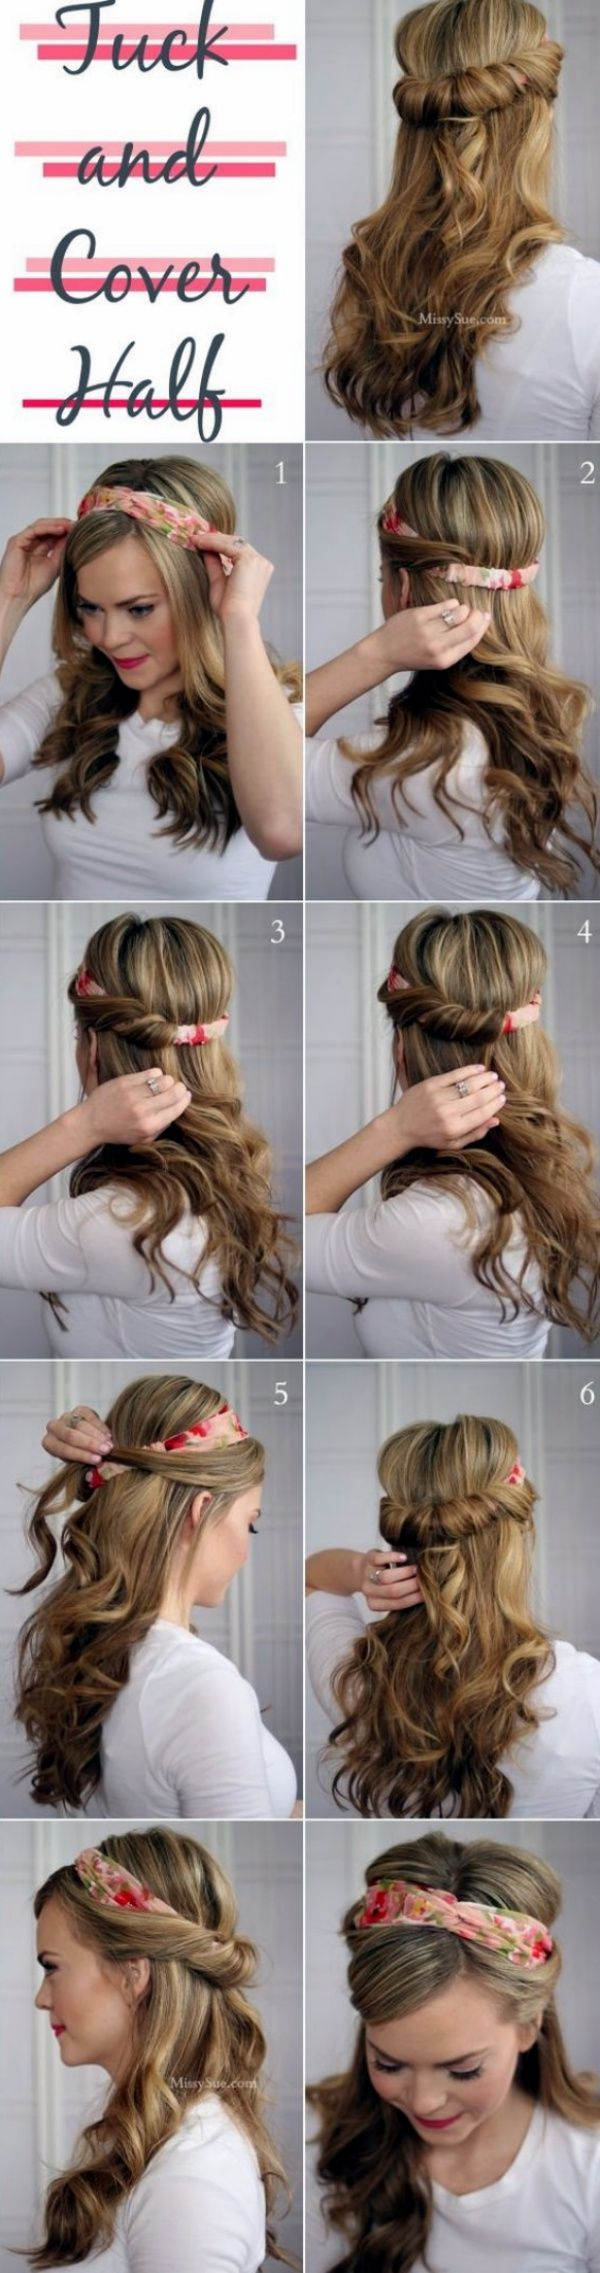 veryeasy hairstyles for verybusy mornings easy hairstyles and